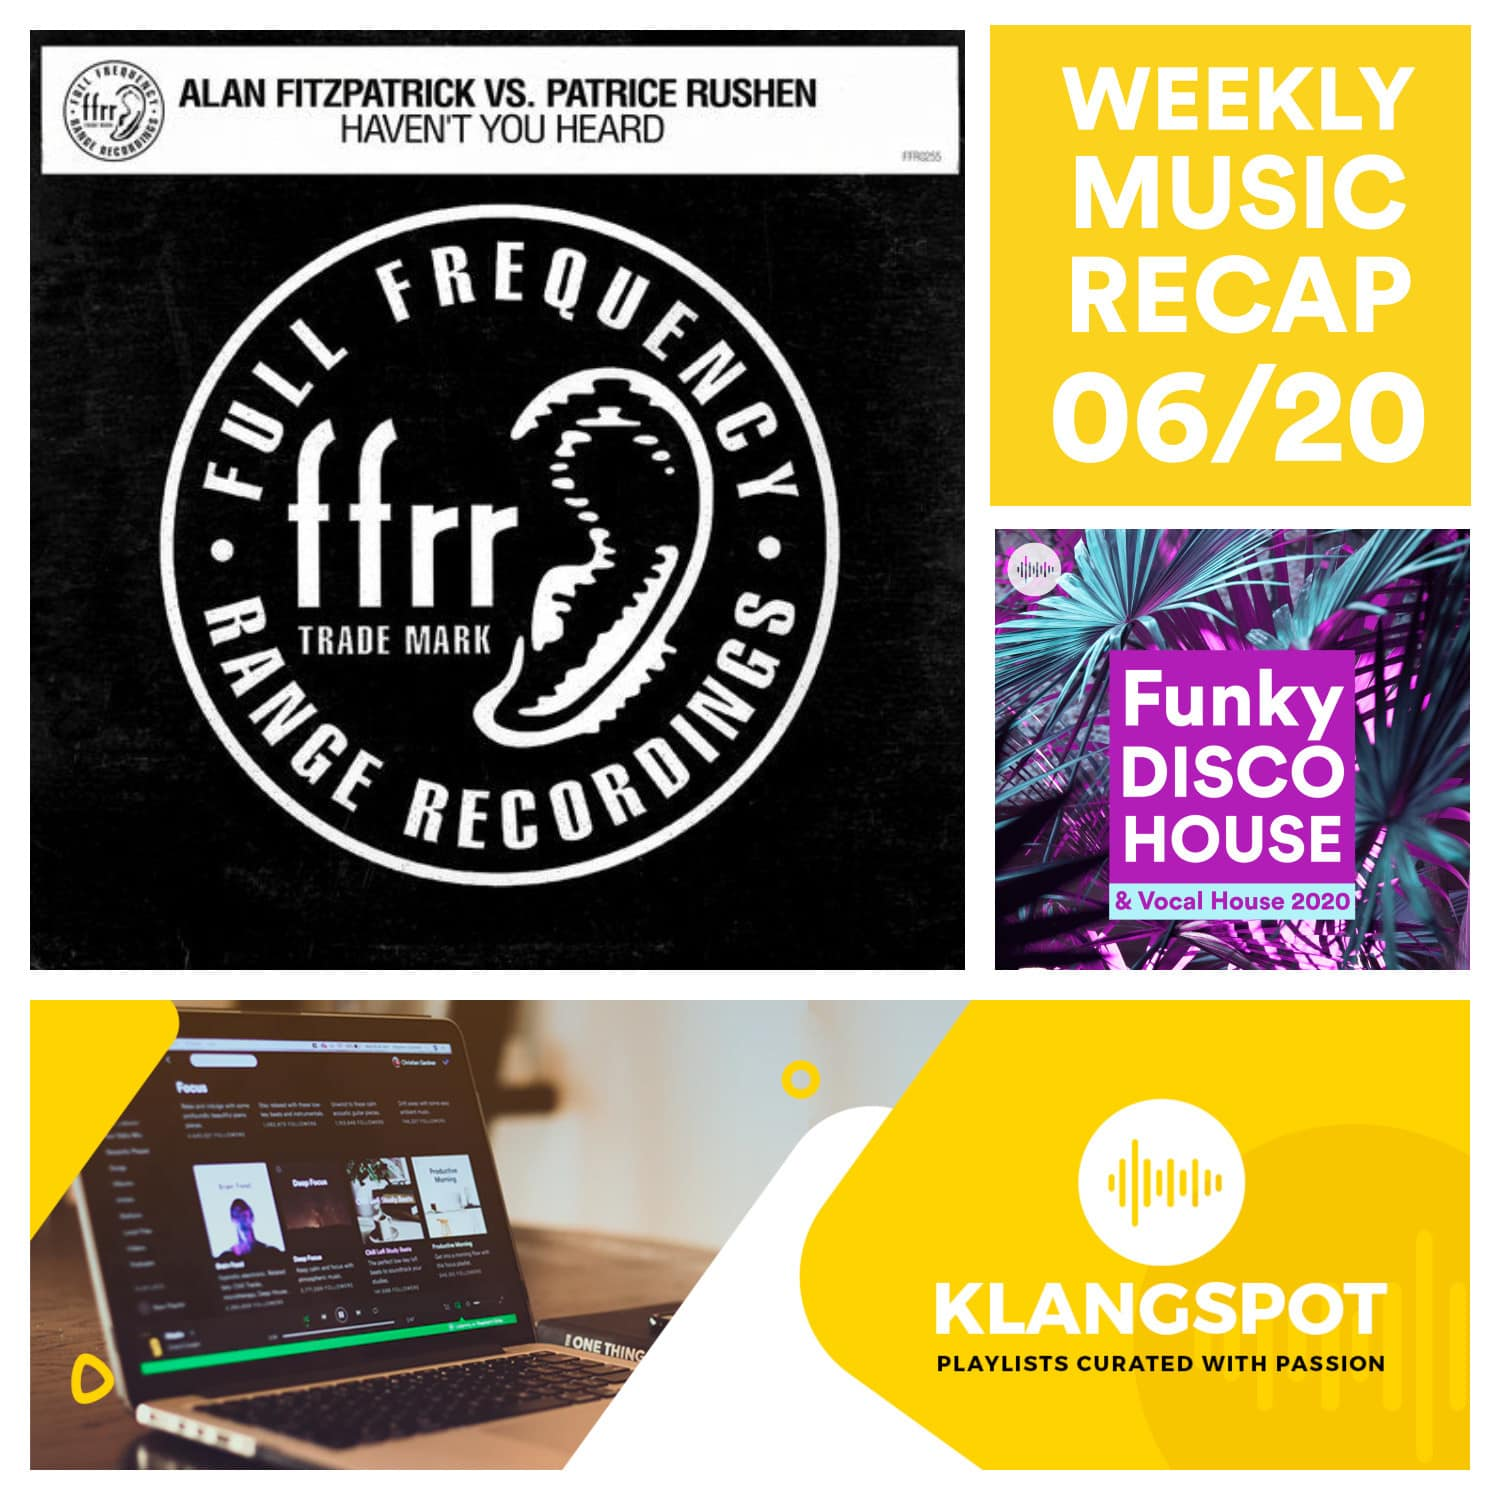 Weekly Music Recap 06/20: Alan Fitzpatrick; Patrice Rushen – Haven't You Heard (Fitzy's Half Charged Mix)